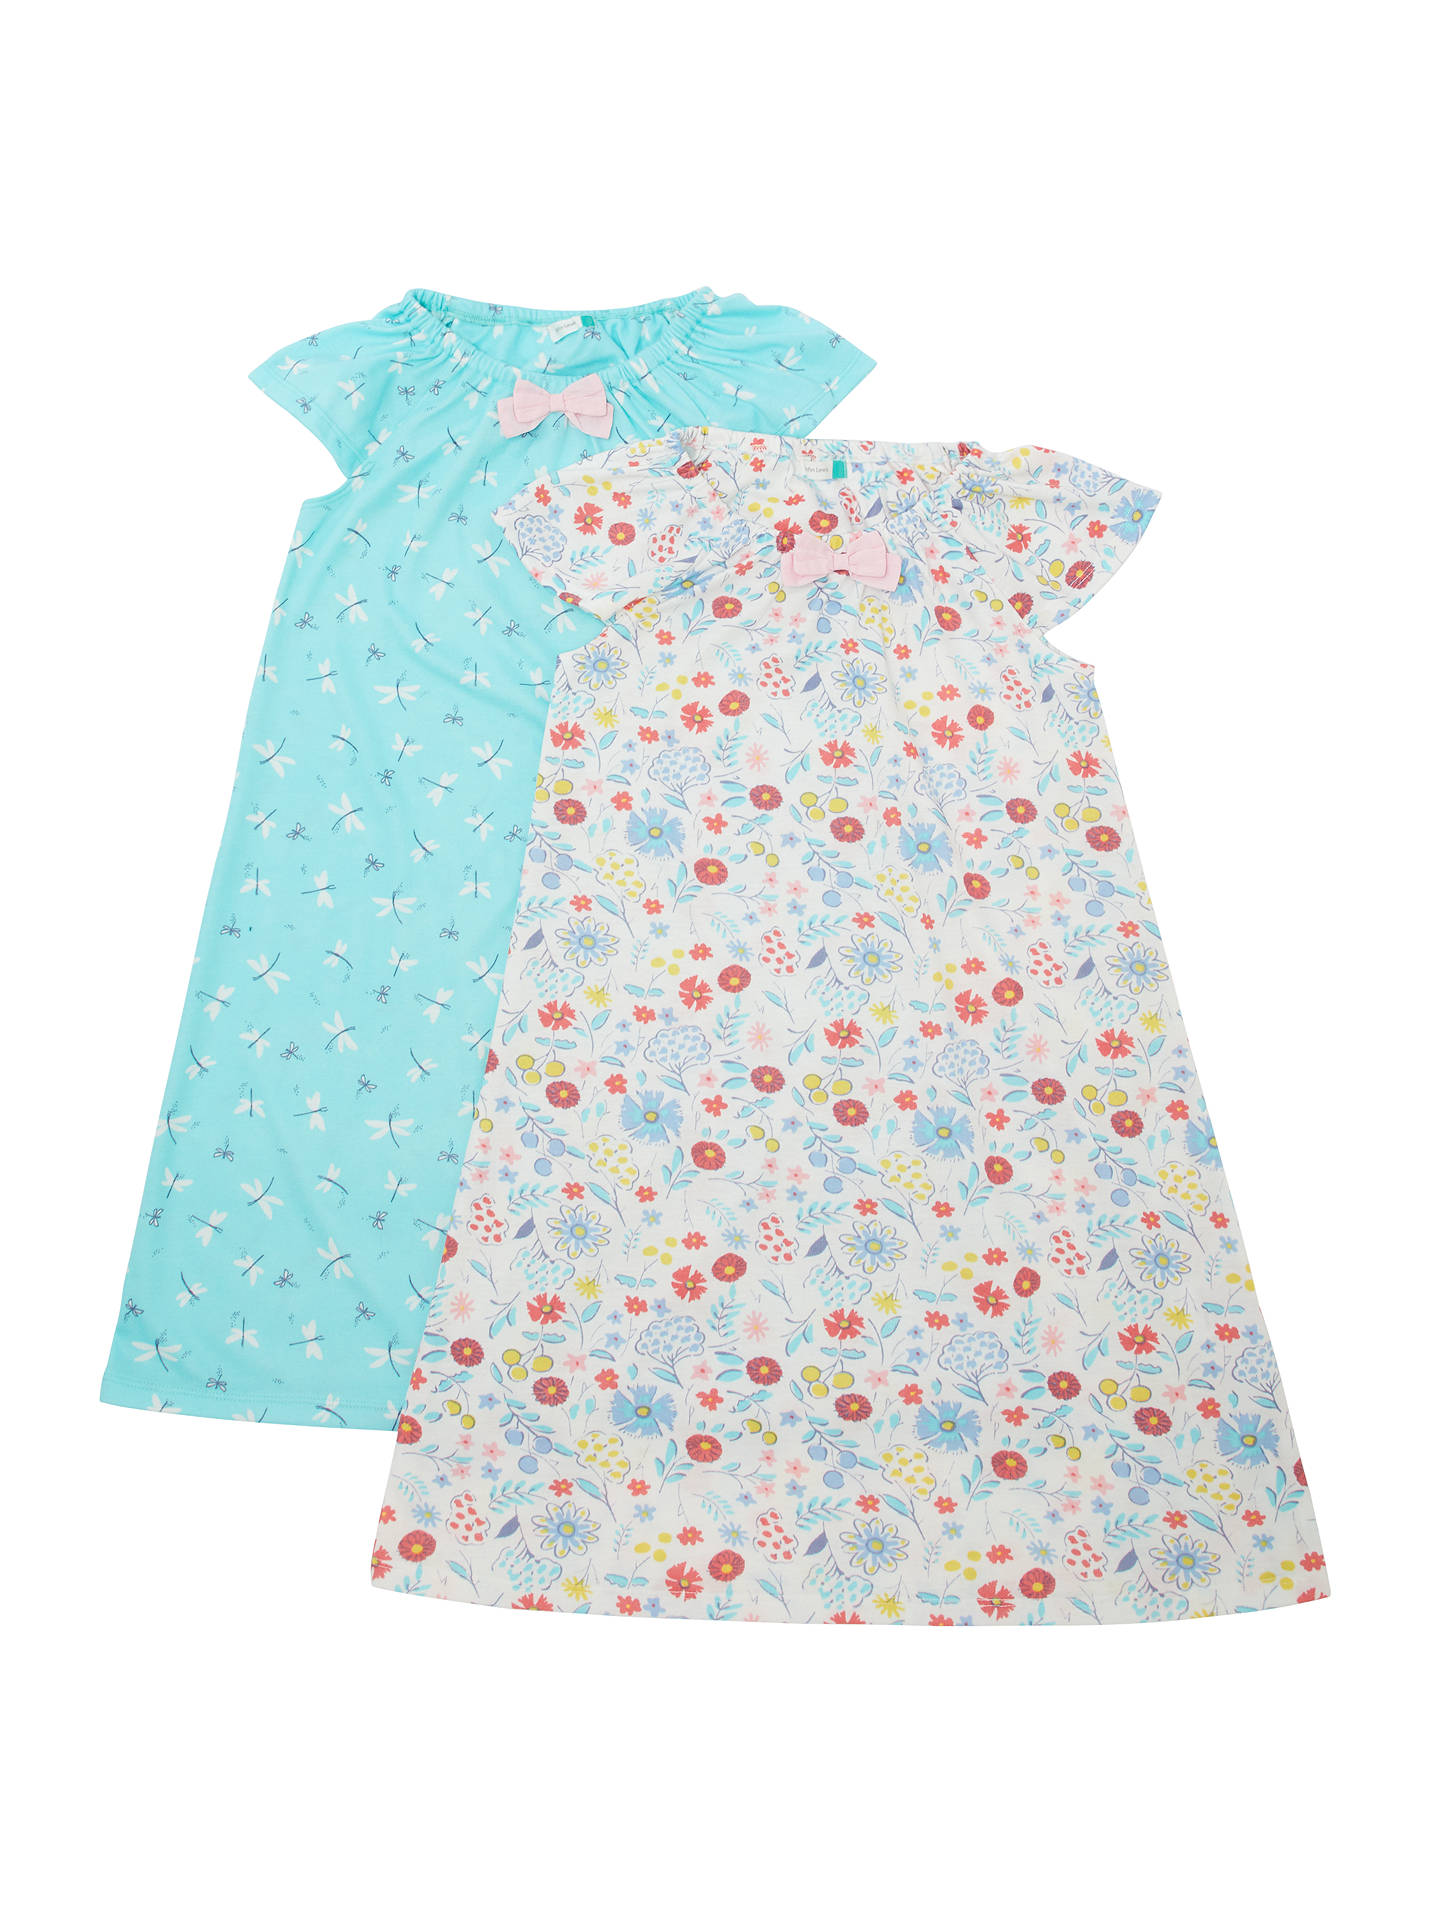 BuyJohn Lewis & Partners Girls' Dragonfly Print Night Dress, Pack of 2, Multi, 2 years Online at johnlewis.com